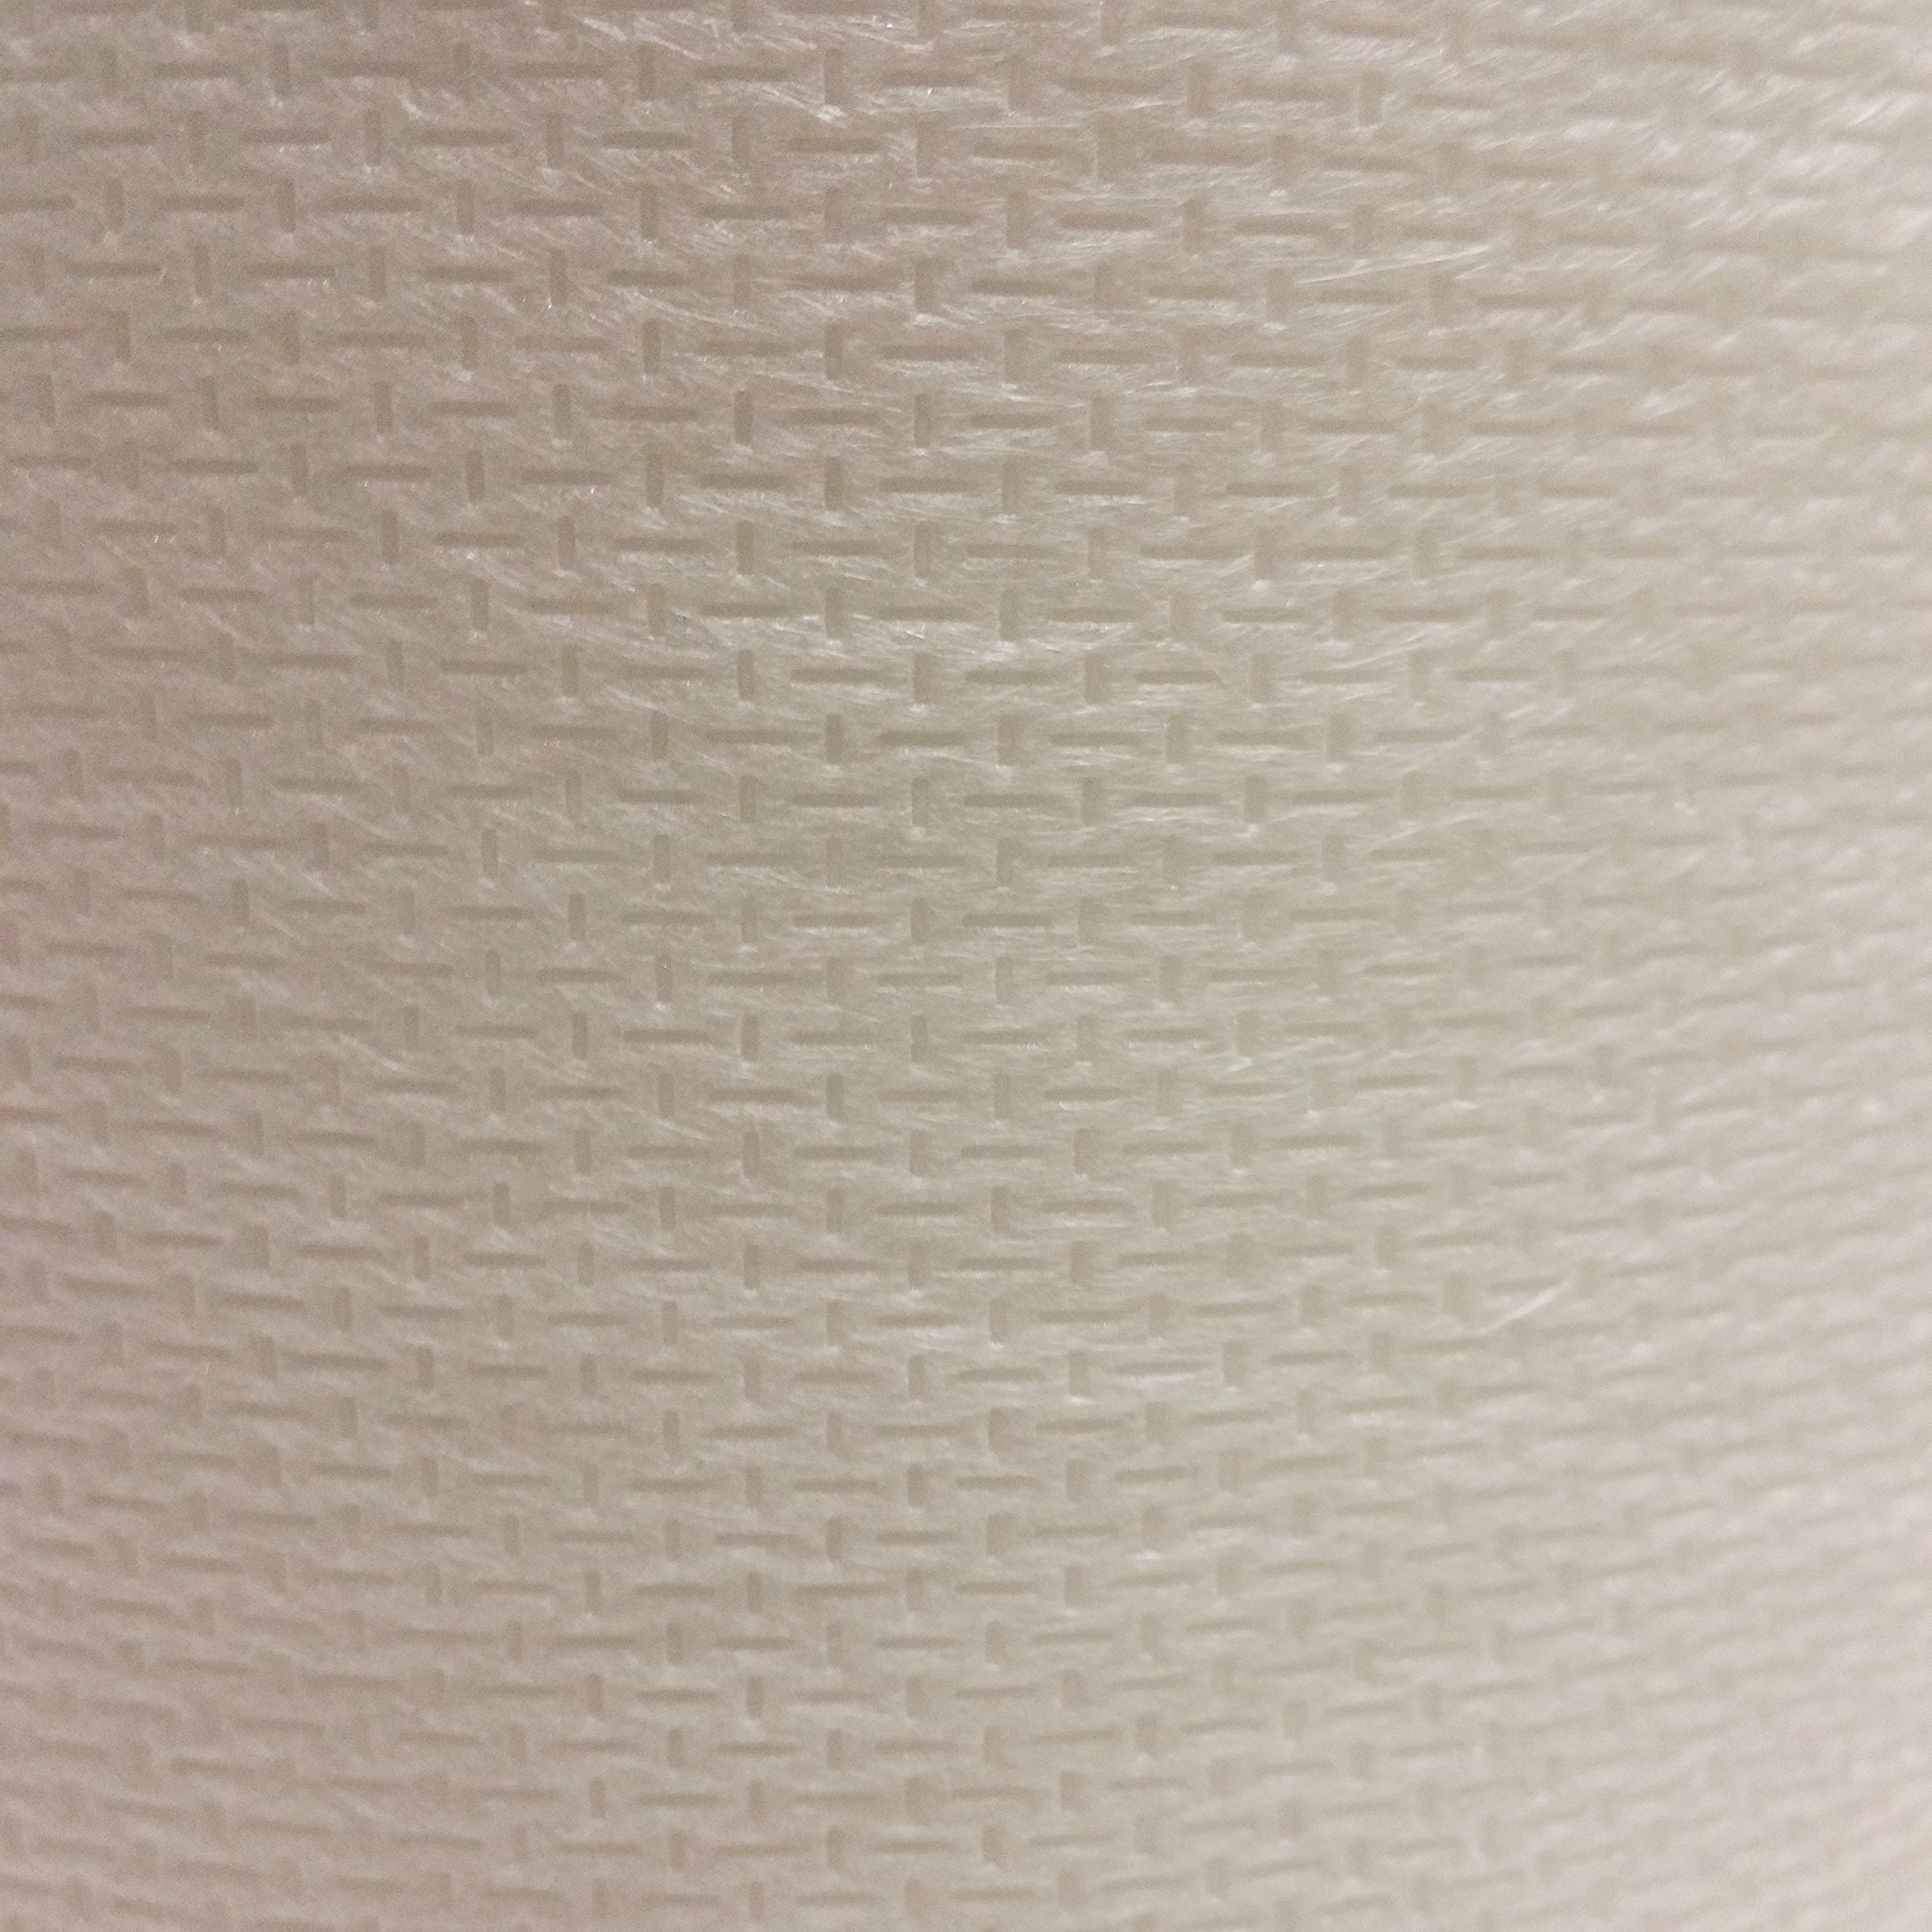 No-Show Polymesh Plus Cut Away Embroidery Stabilizer Backing - John Solomon - 12'' X 50yd by World WeidnerTM